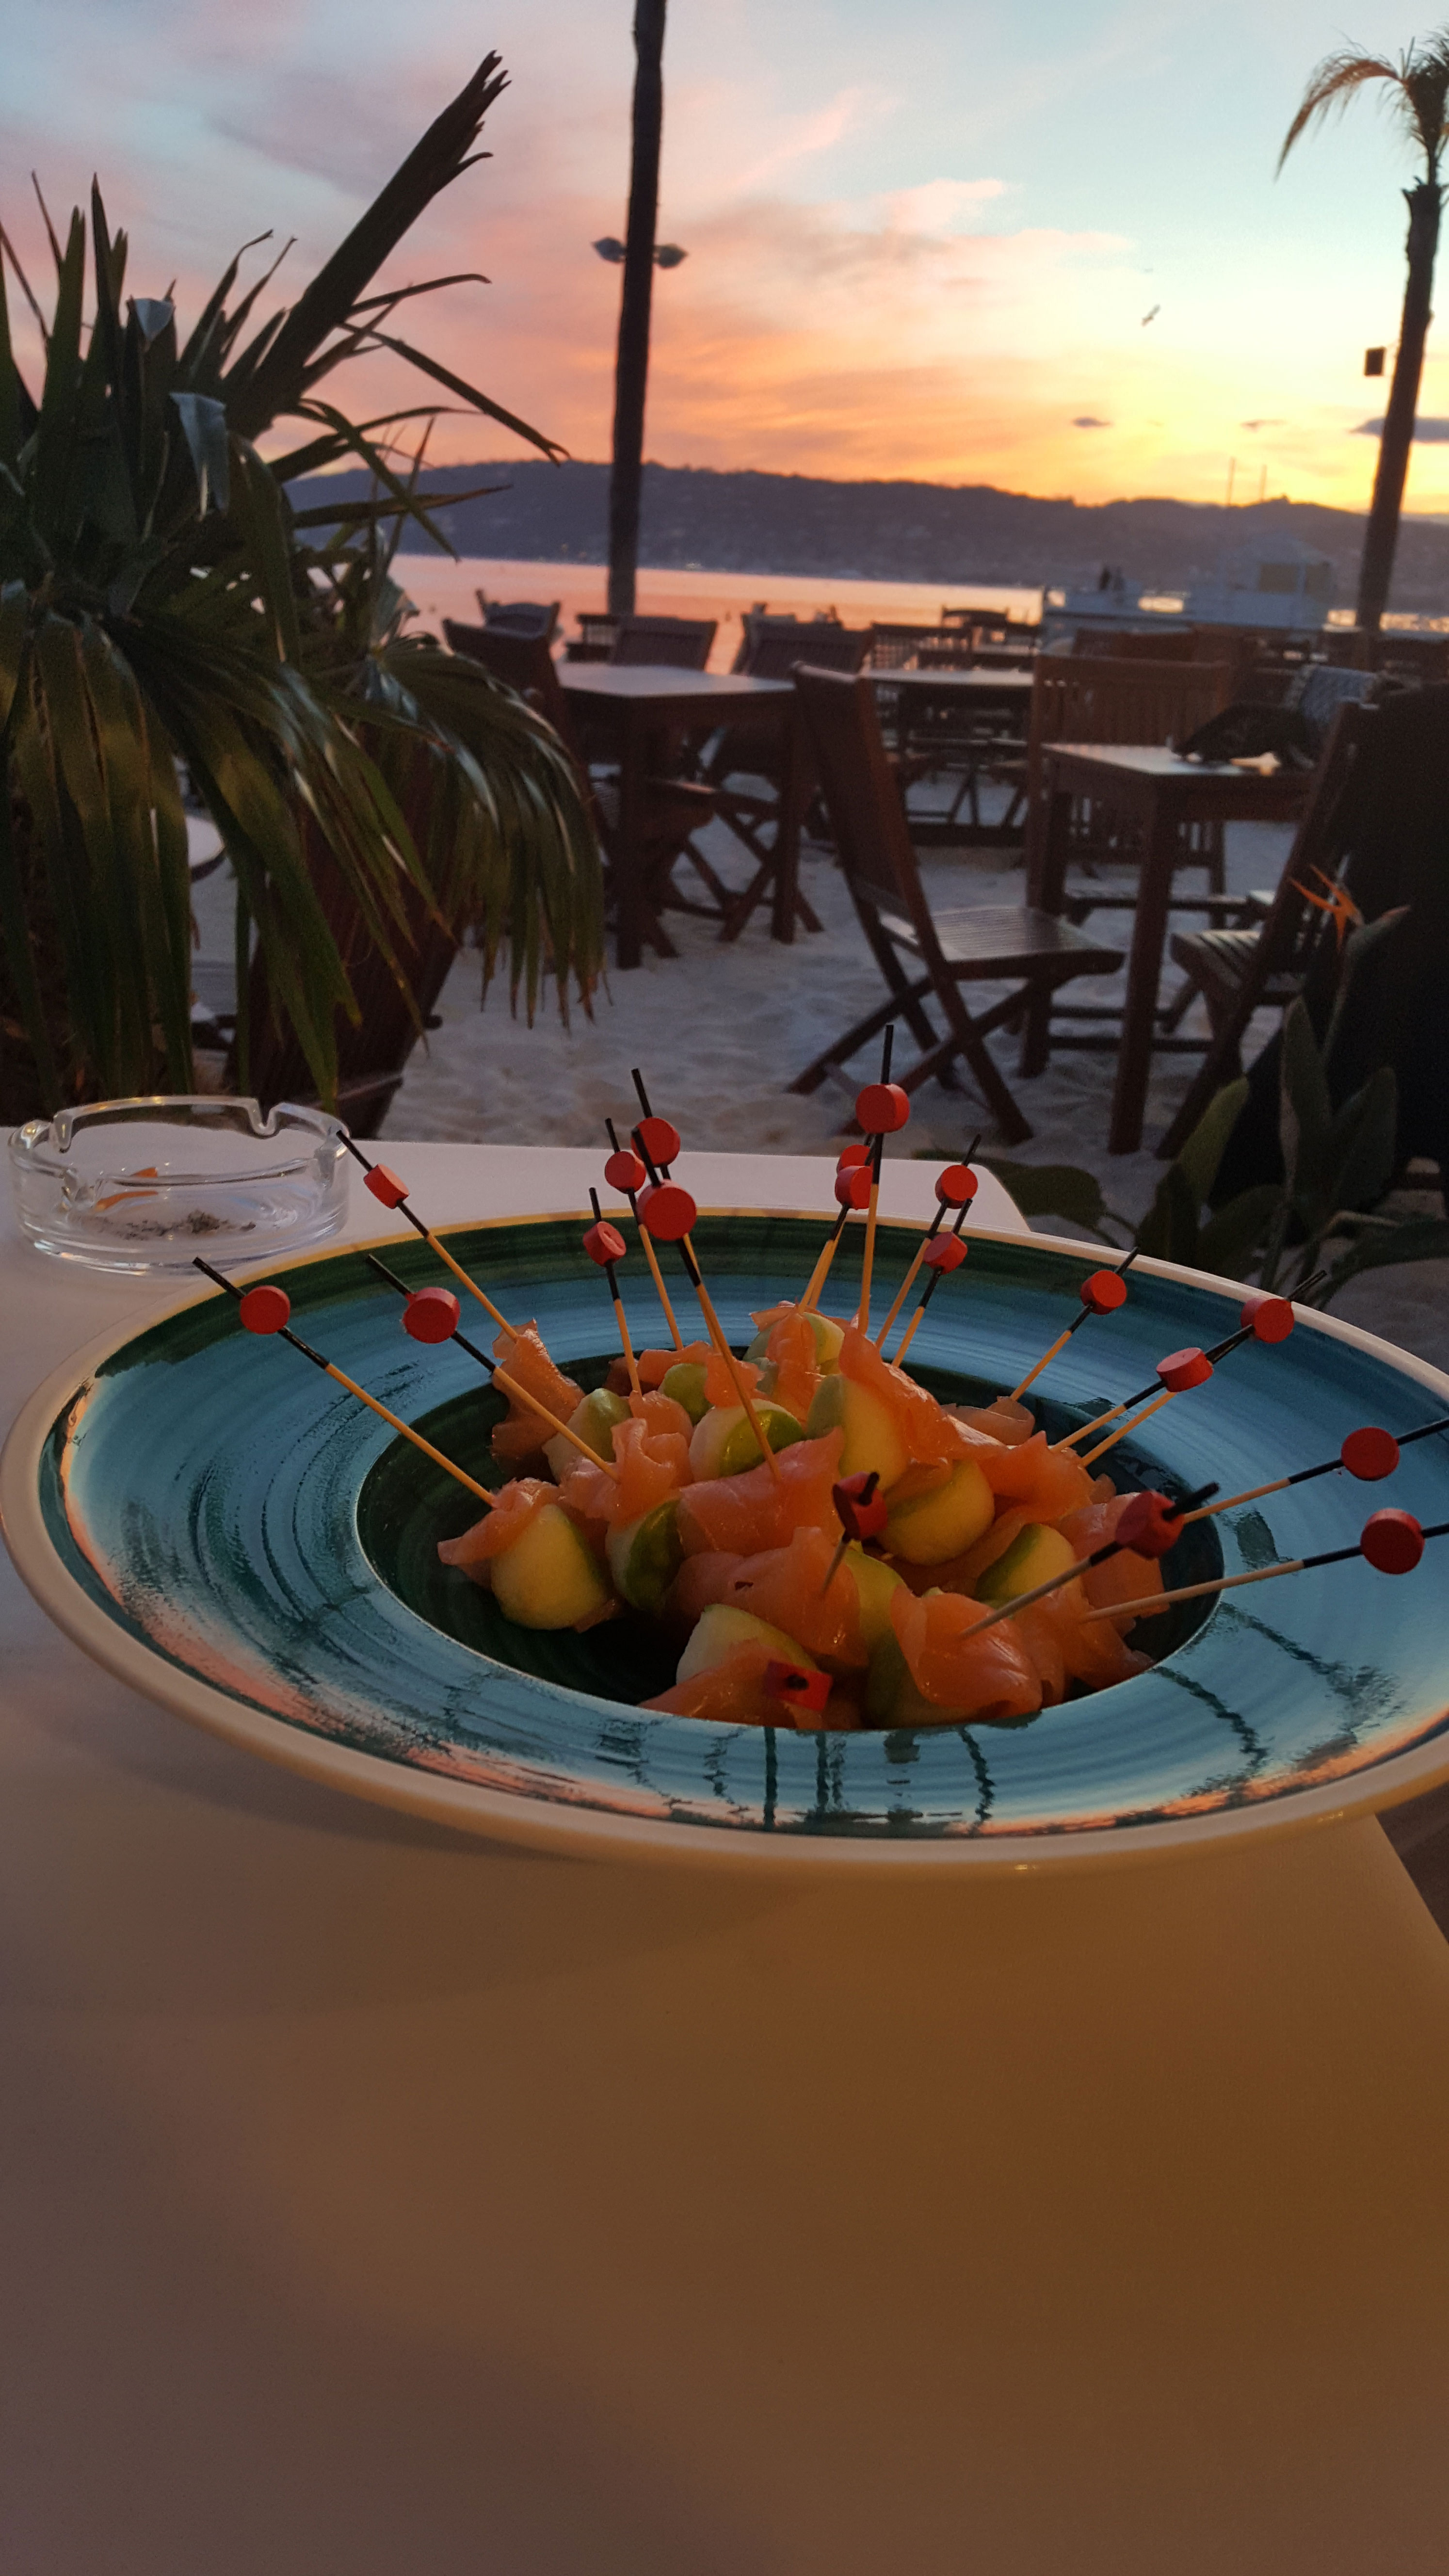 Restaurant_reception_sunrise_salade_de_fruit